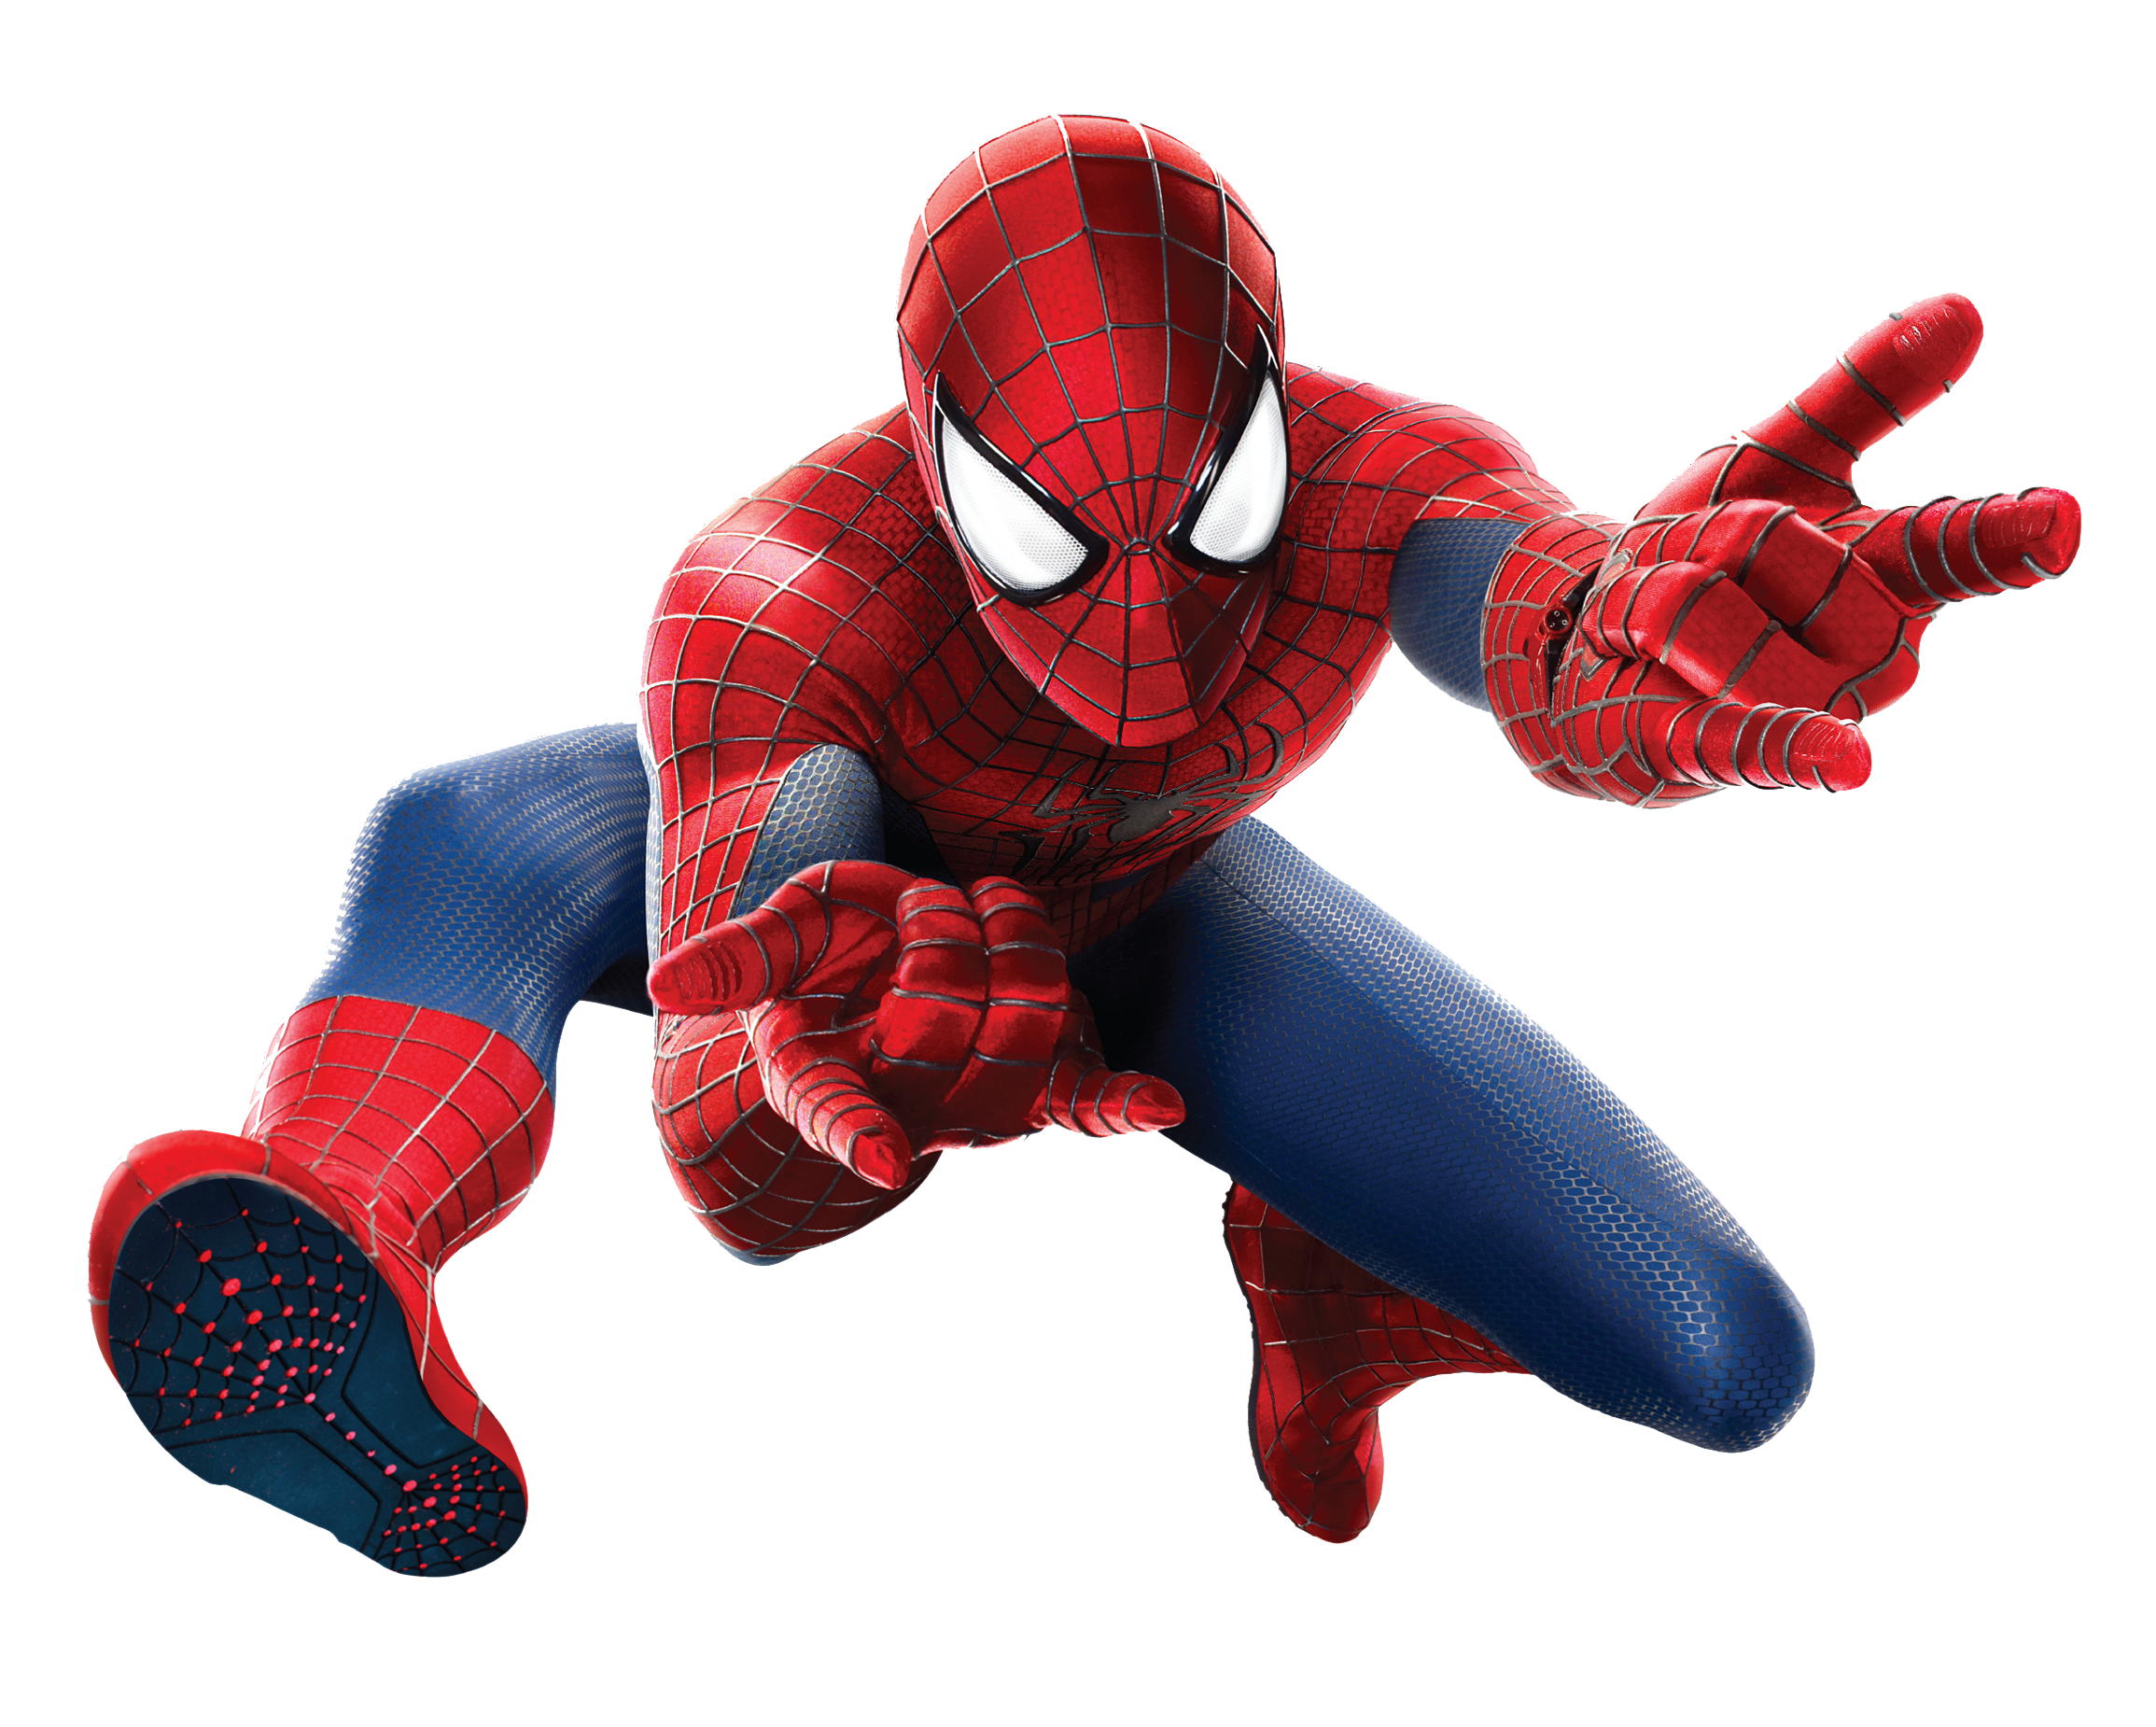 Spider-Man Png Hd PNG Image - Man HD PNG